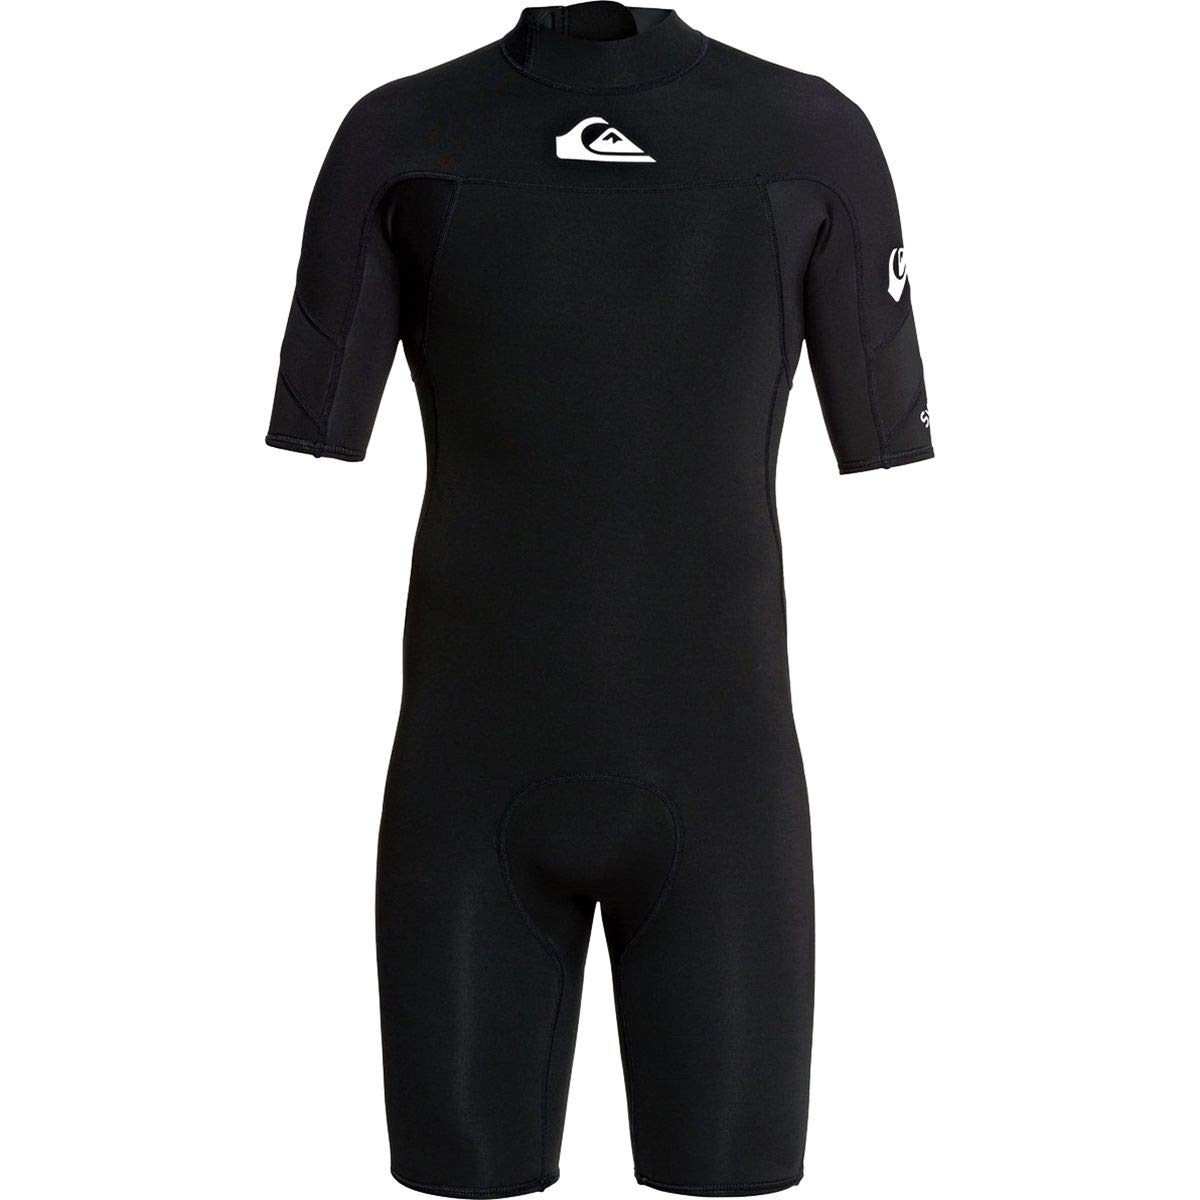 Quiksilver Mens 2/2Mm Syncro - Short Sleeve Back Zip Flt Springsuit Short Sleeve Back Zip Flt Springsuit Black M by Quiksilver